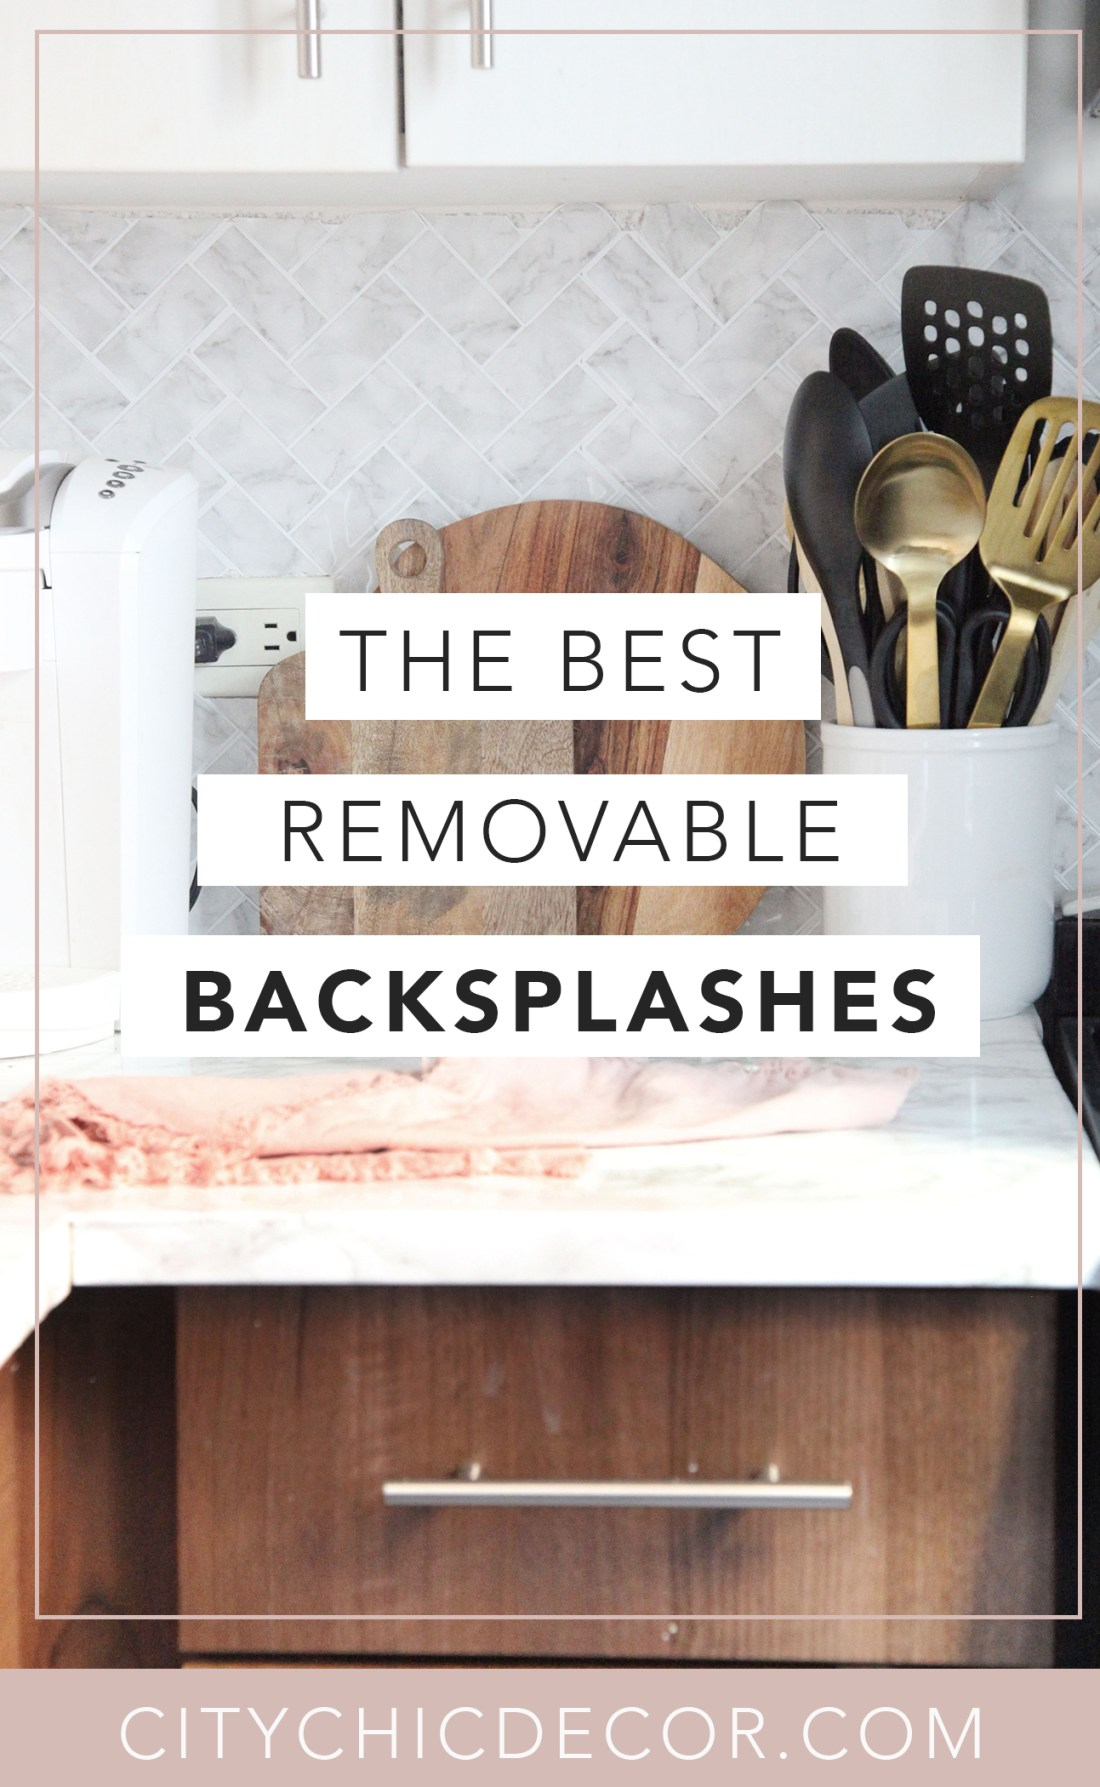 If you live in a rental home and struggle decorating it, you need to know about these removable peel & stick backsplashes. You can use these from your kitchen to your bathroom! #rentalhomedecorating #rentaldecorating #rentalapartmentdecorating #removablewallpaper #removablebacksplash #removableflooring #peelstick